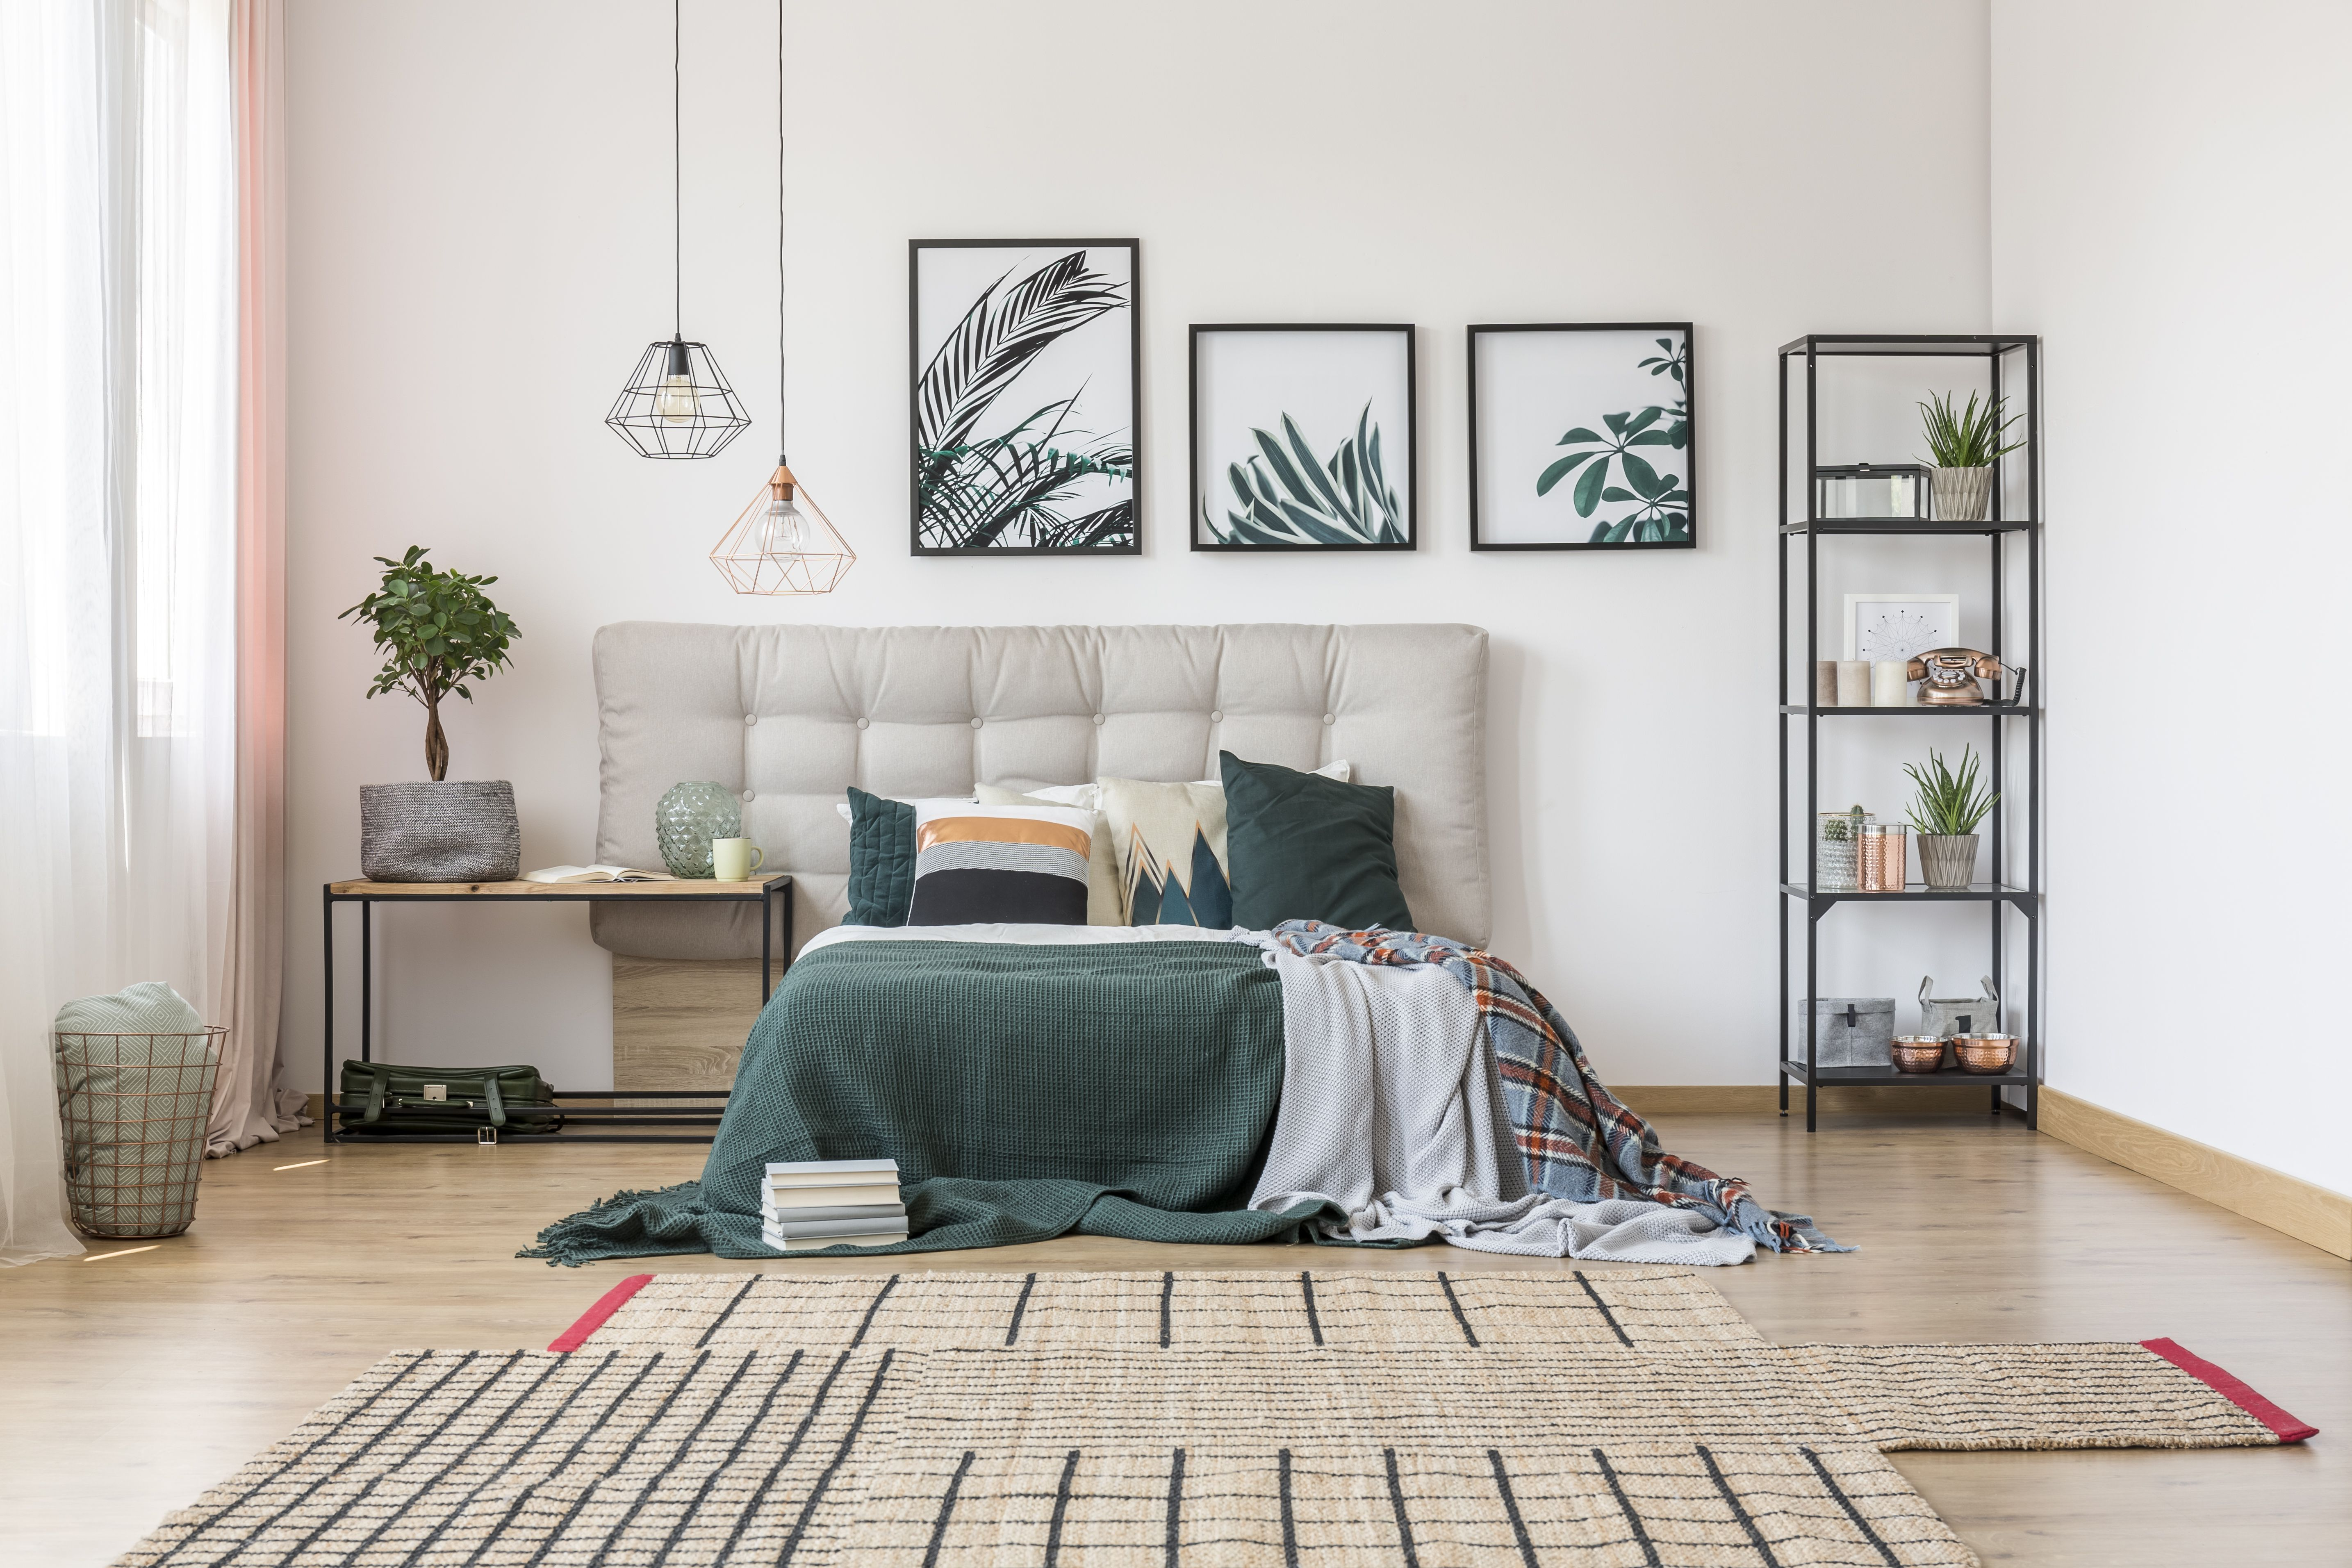 woodland theme decor ideas get the look at home.htm decorating the bedroom with plants or a botanical theme  bedroom with plants or a botanical theme